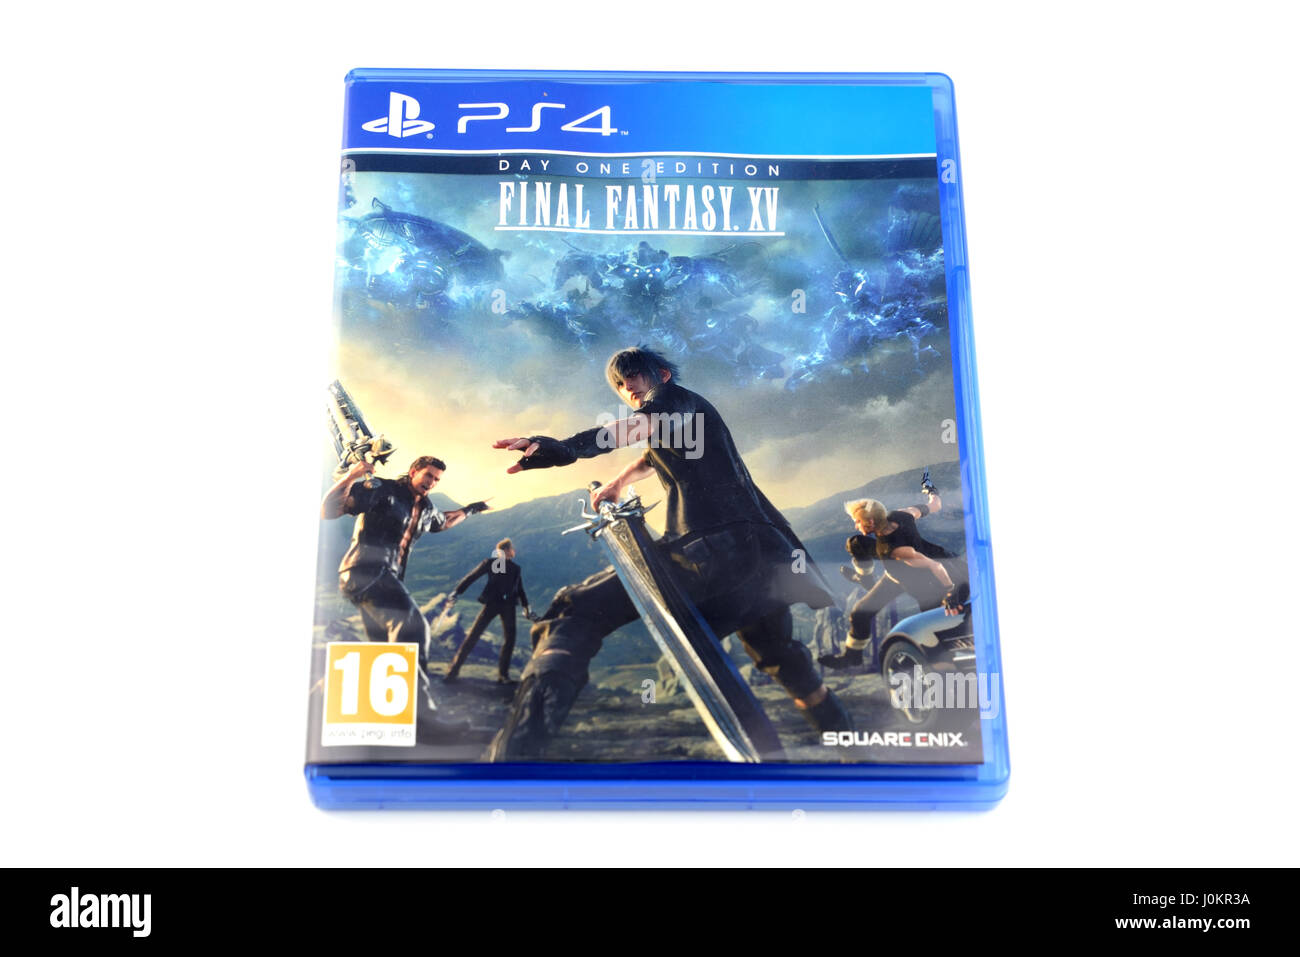 The famous video game Final Fantasy XV, released by Square Enix, for Playstation 4 devices - Stock Image